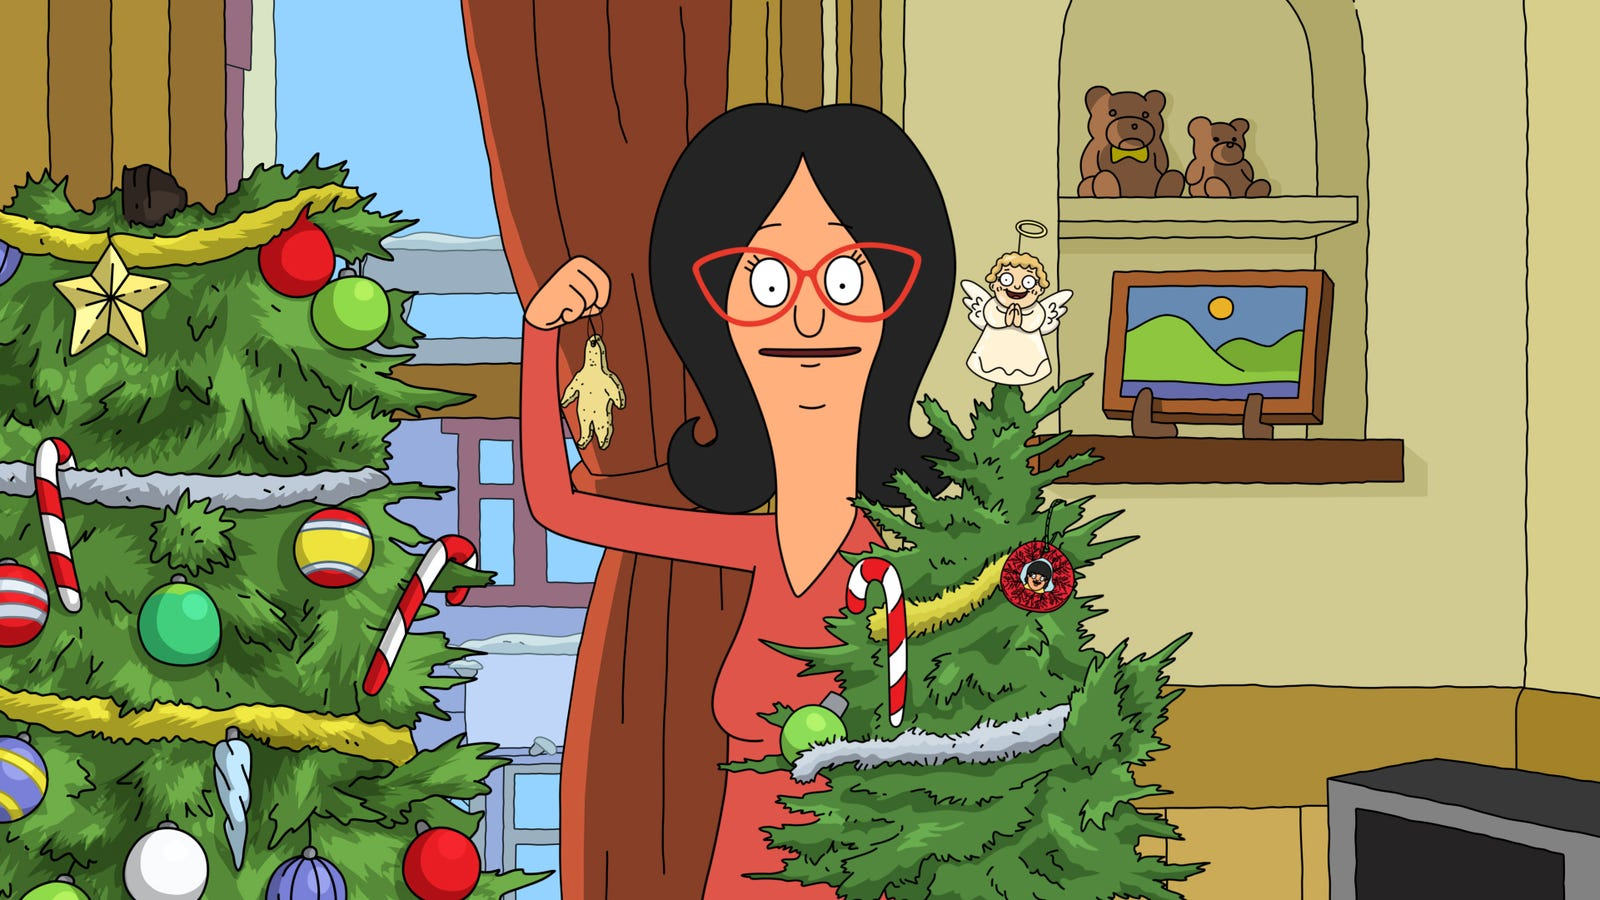 A Christmas crime is afoot in a very merry Bob's Burgers